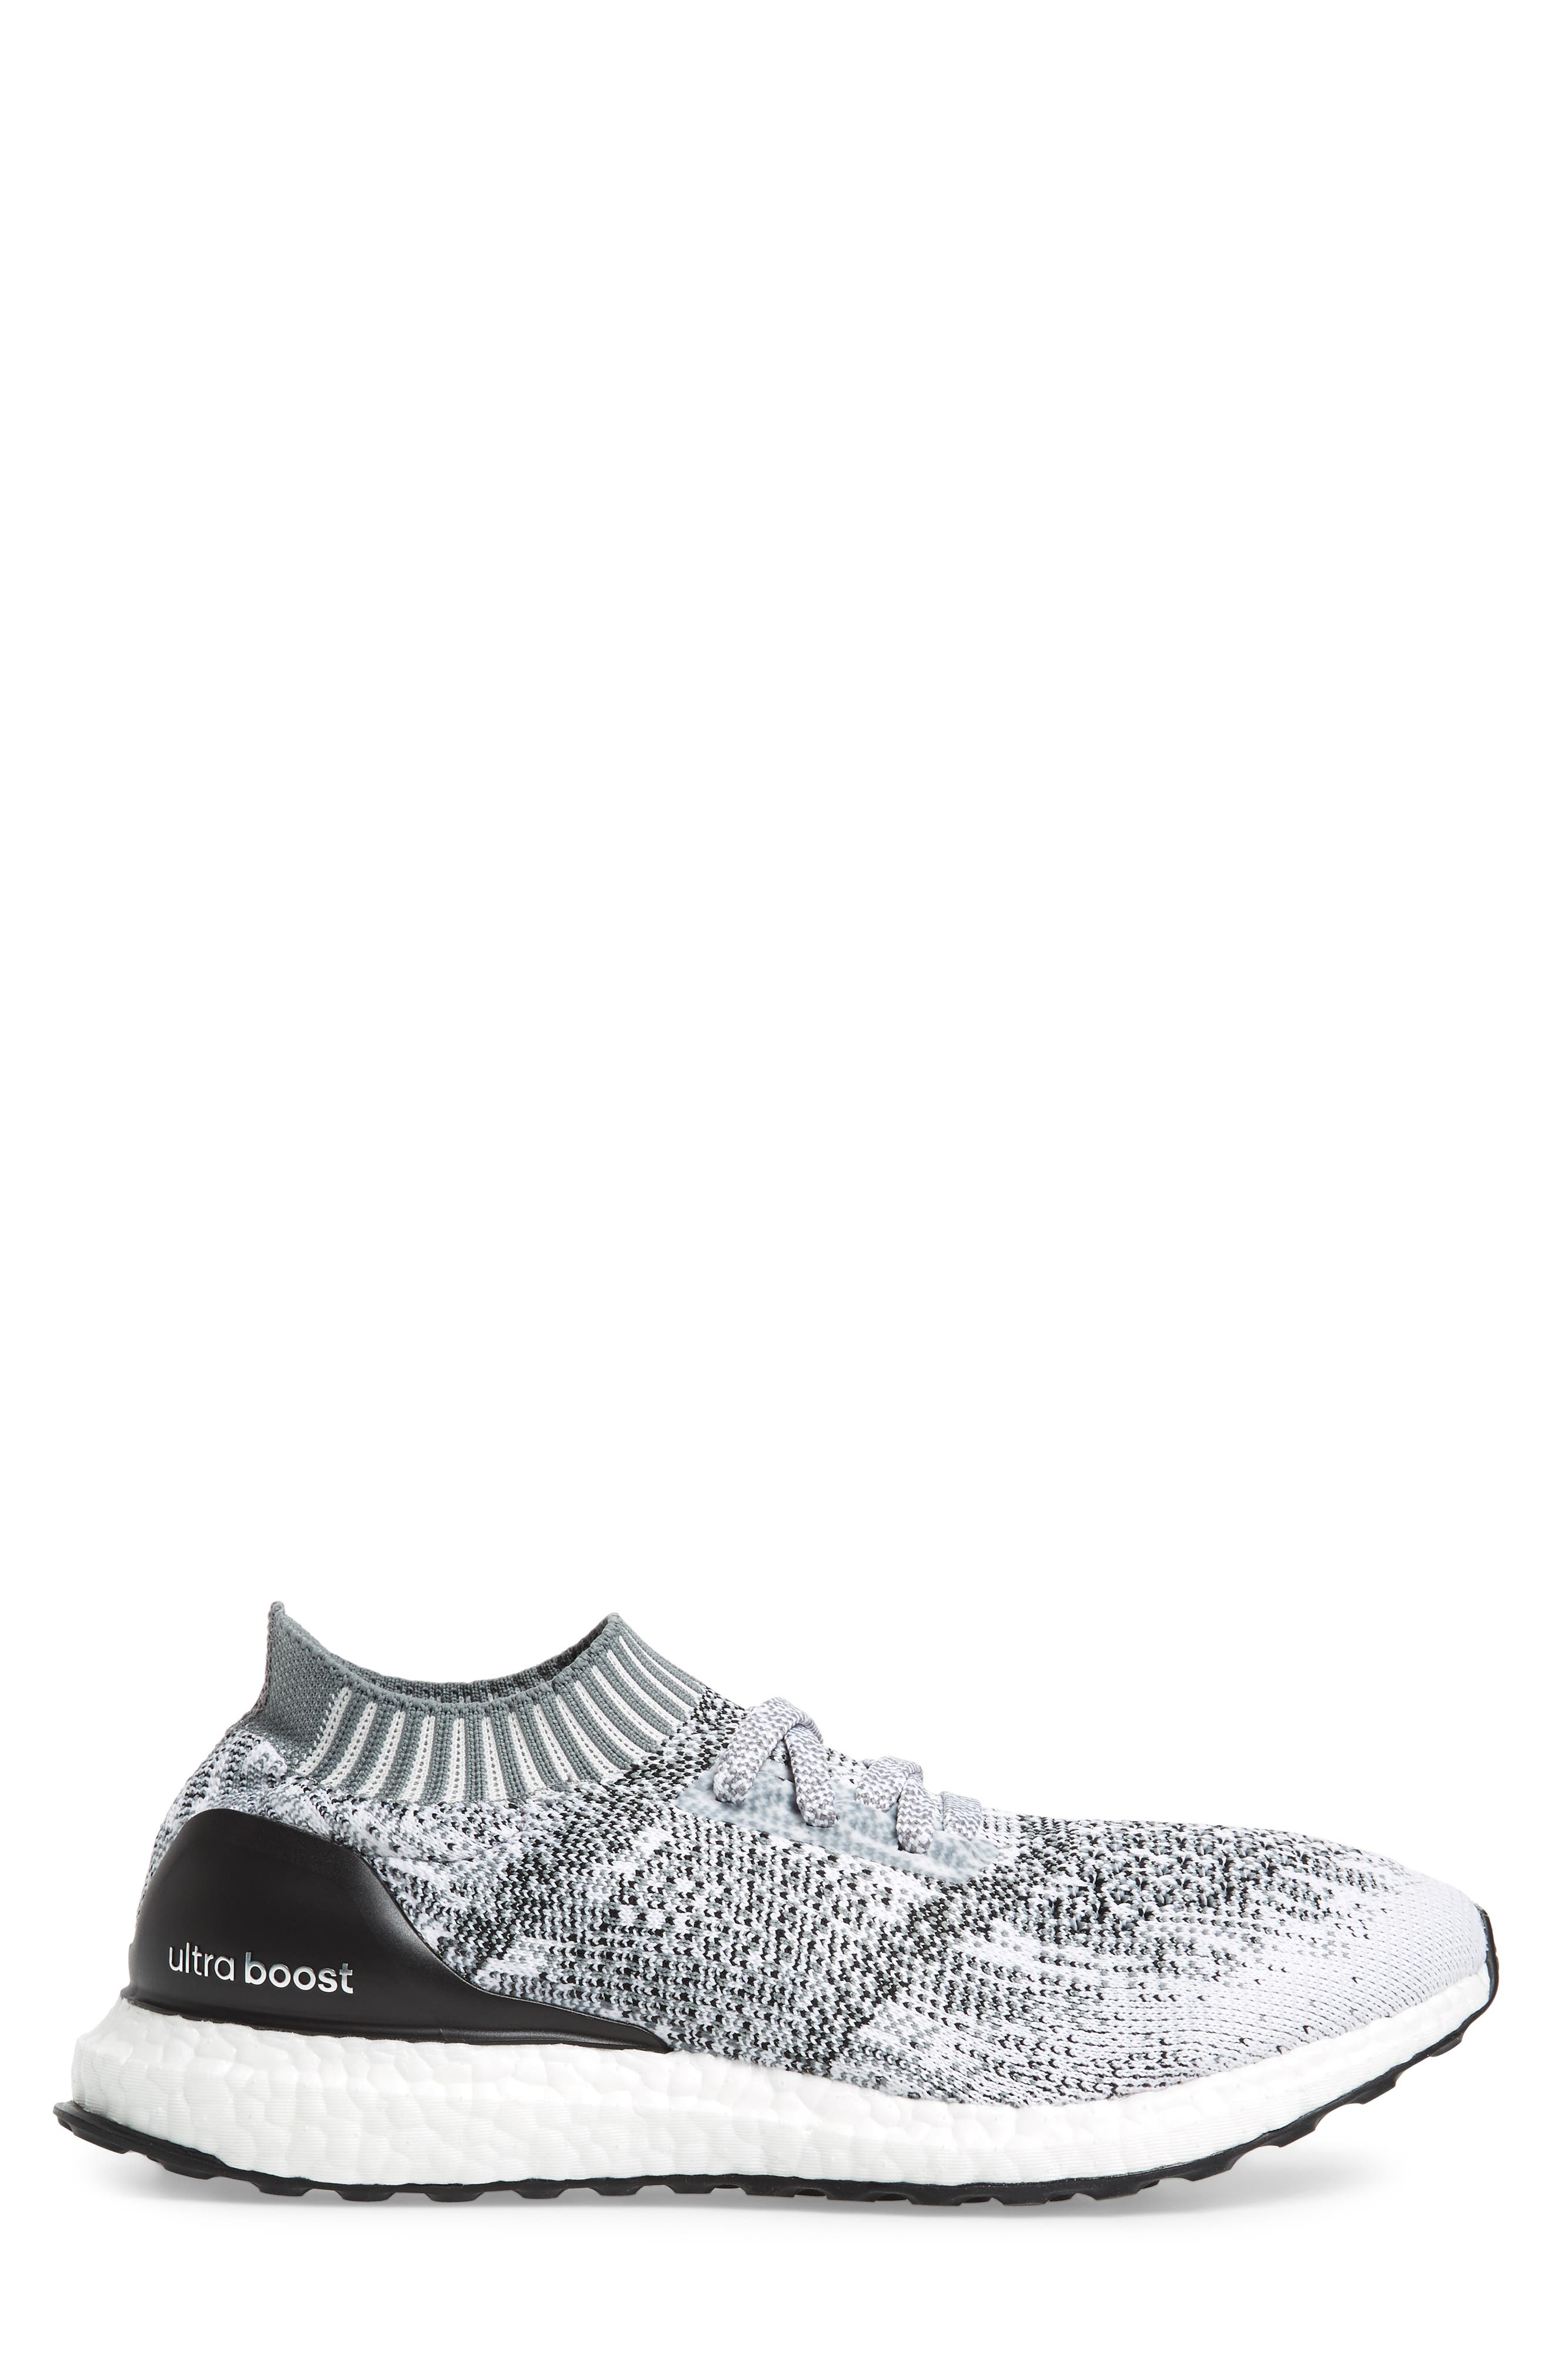 ADIDAS,                             'UltraBoost Uncaged' Running Shoe,                             Alternate thumbnail 3, color,                             026